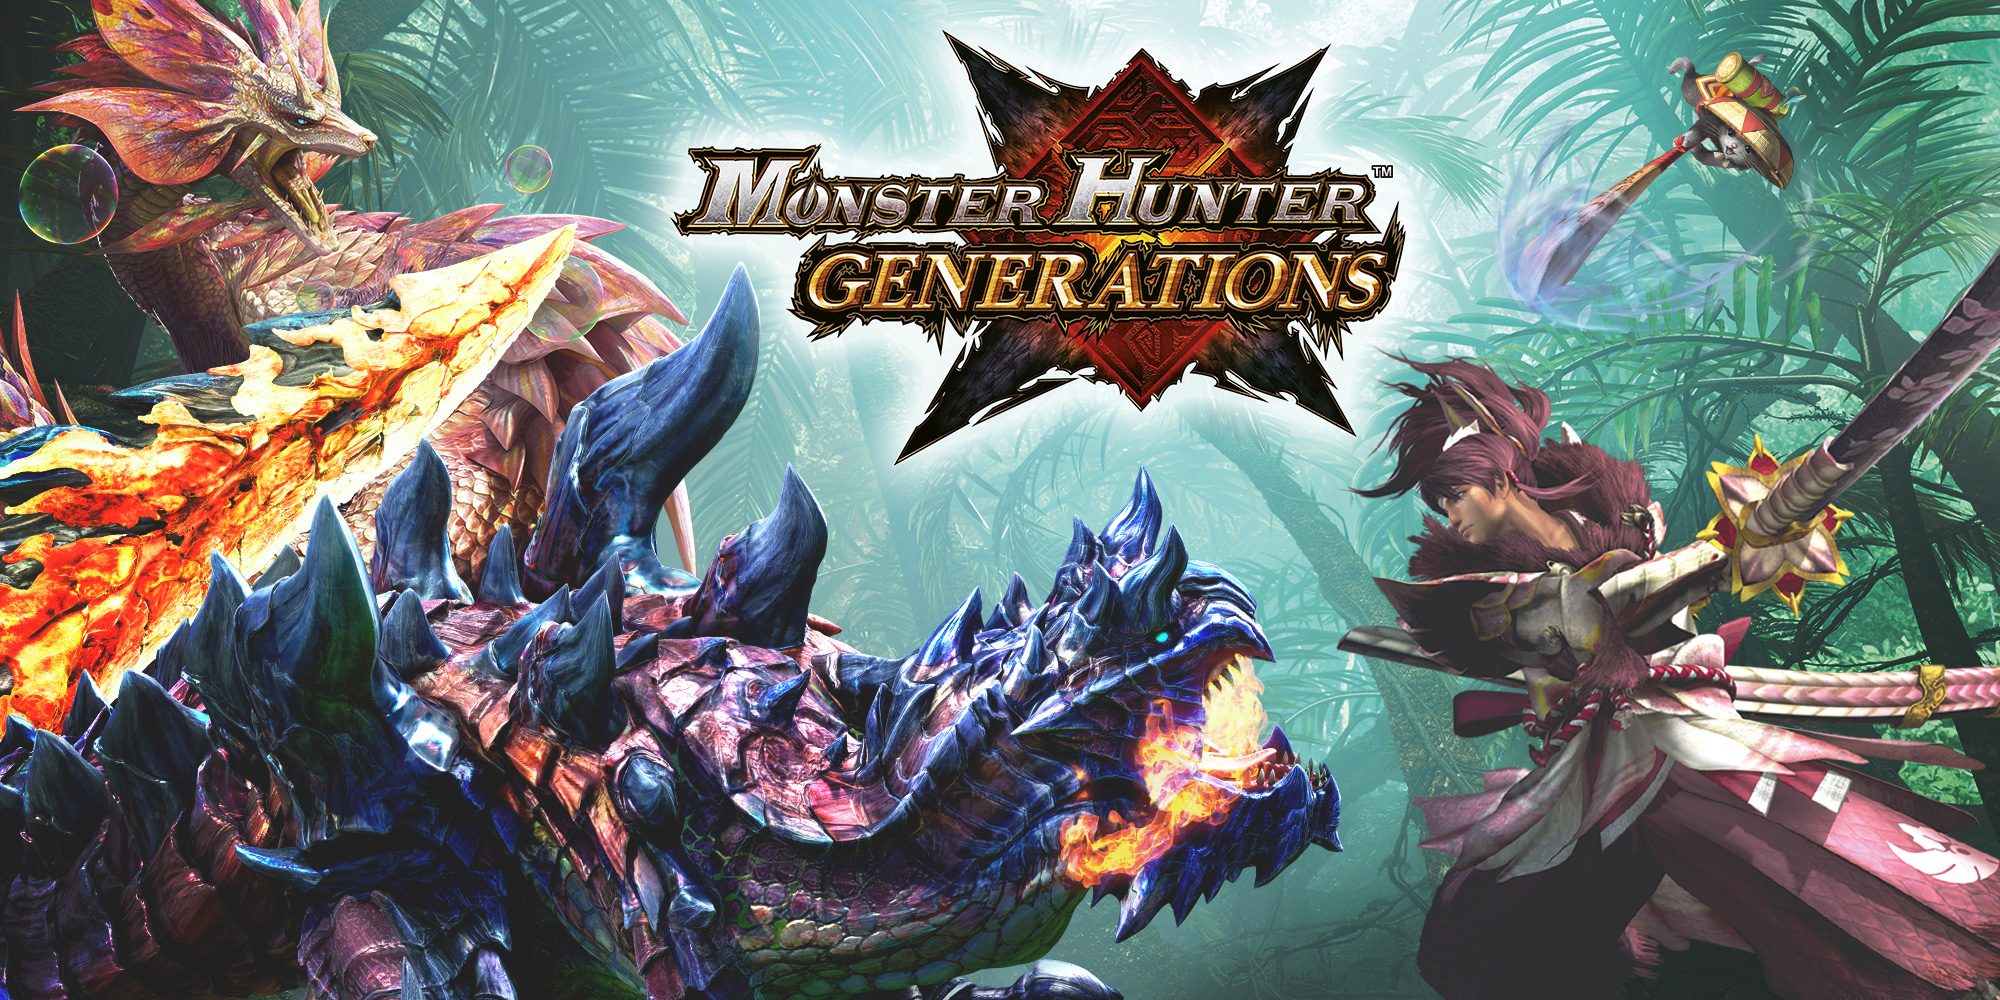 Junta-te à caçada com a demo de Monster Hunter™ Generations!